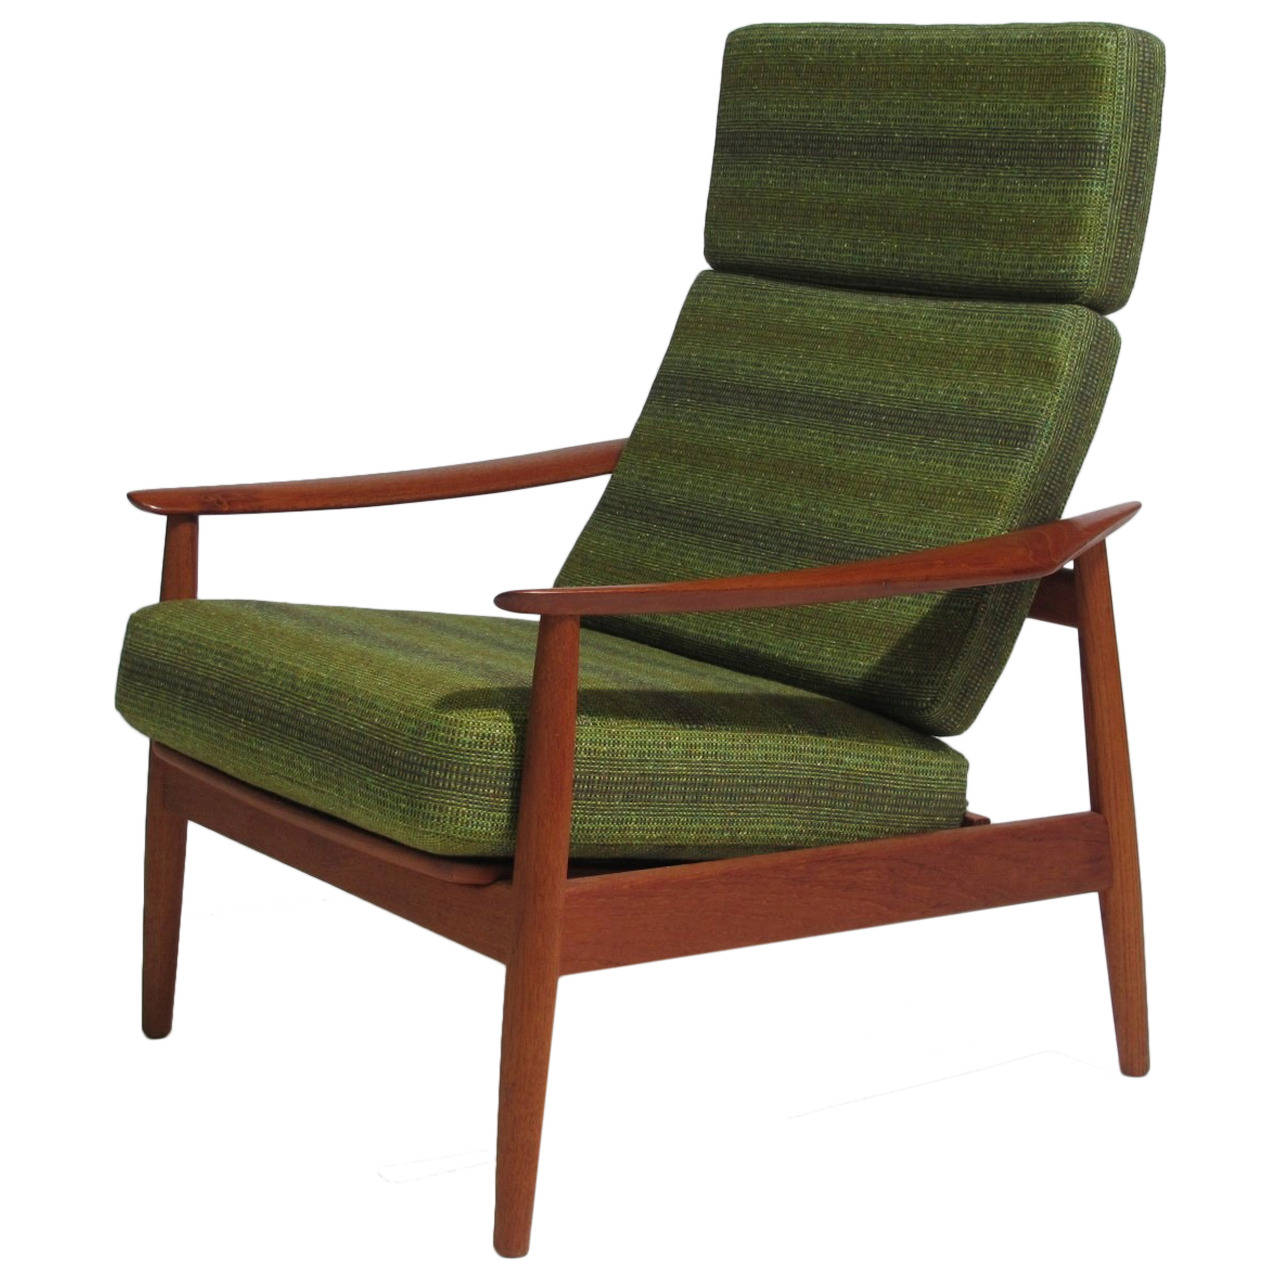 Image of: Beautiful Danish Lounge Chair